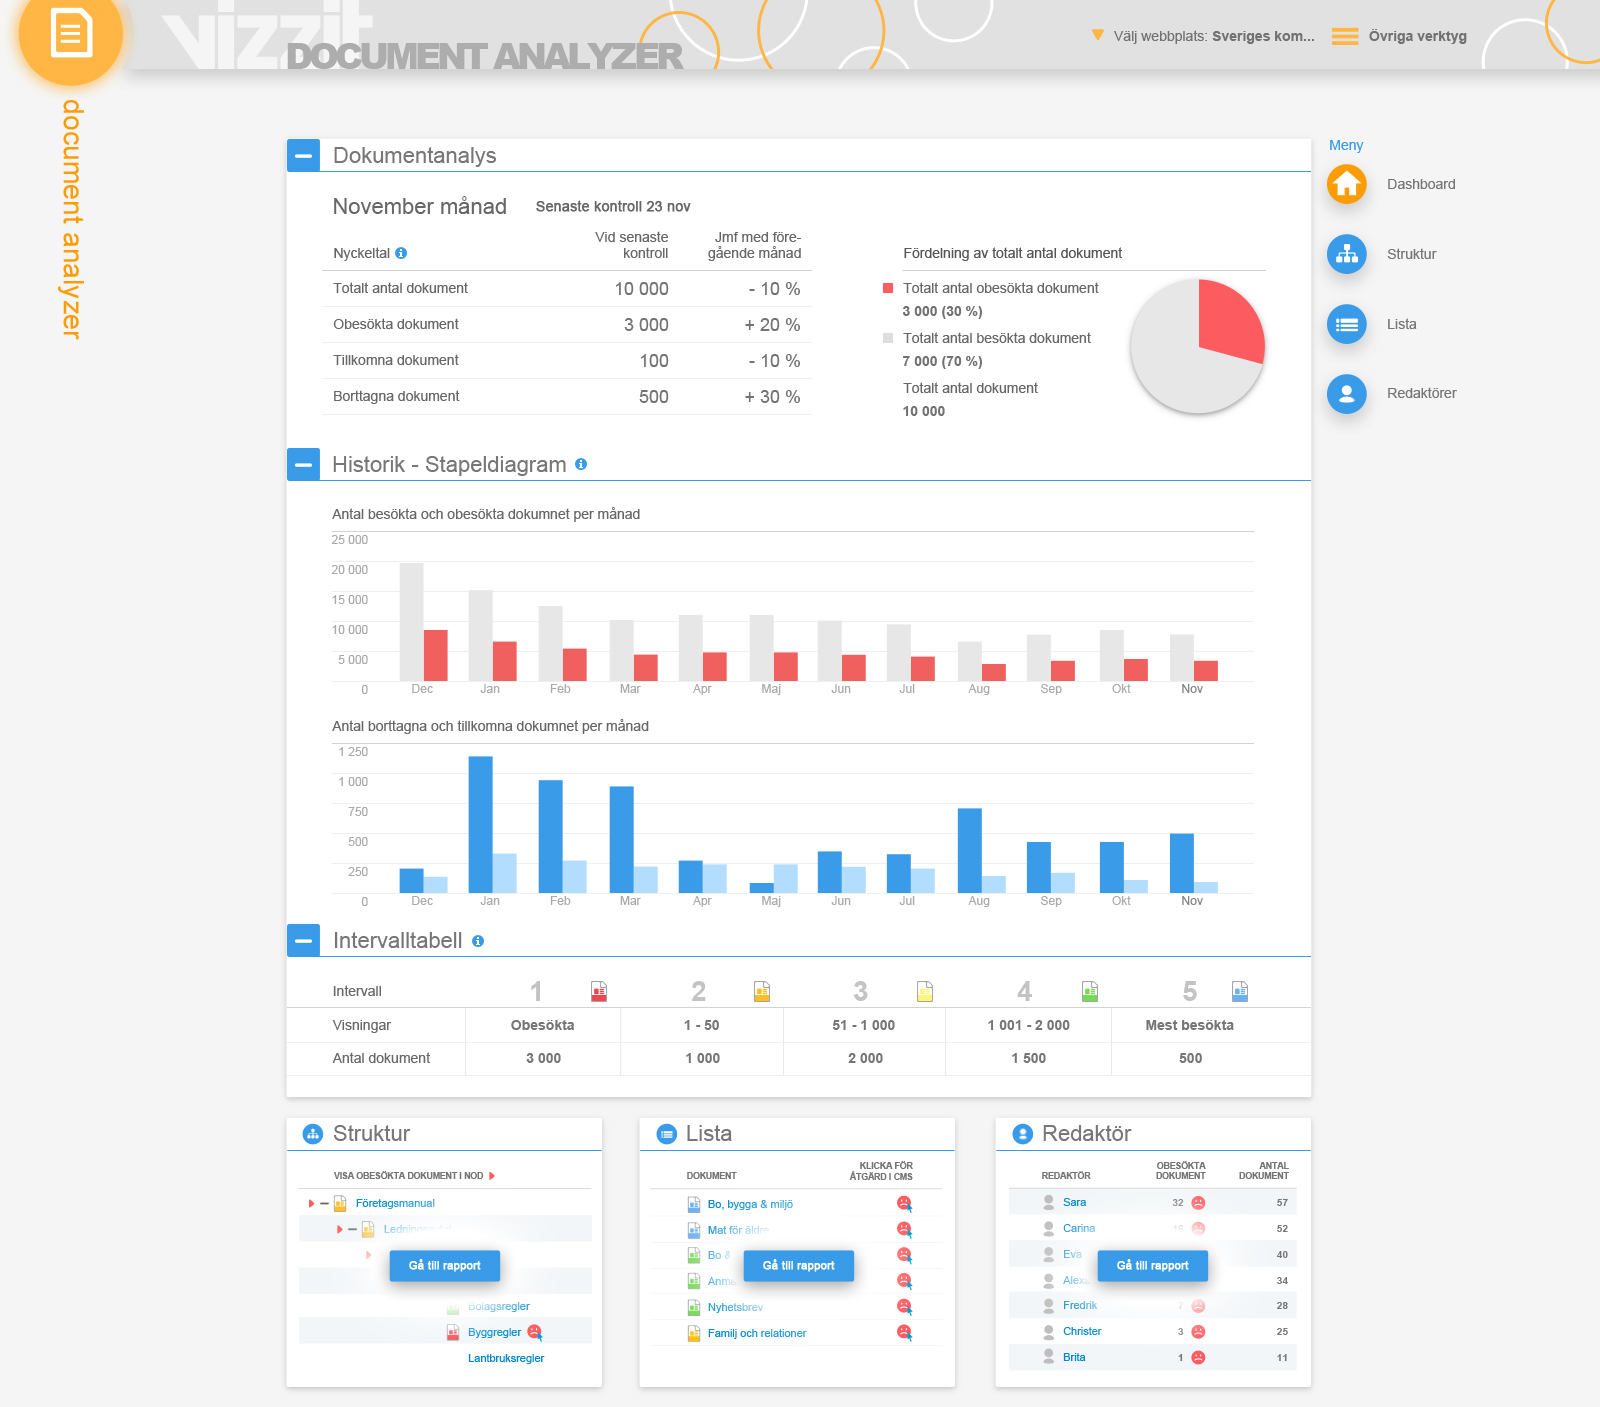 documentanalyzer.dashboard